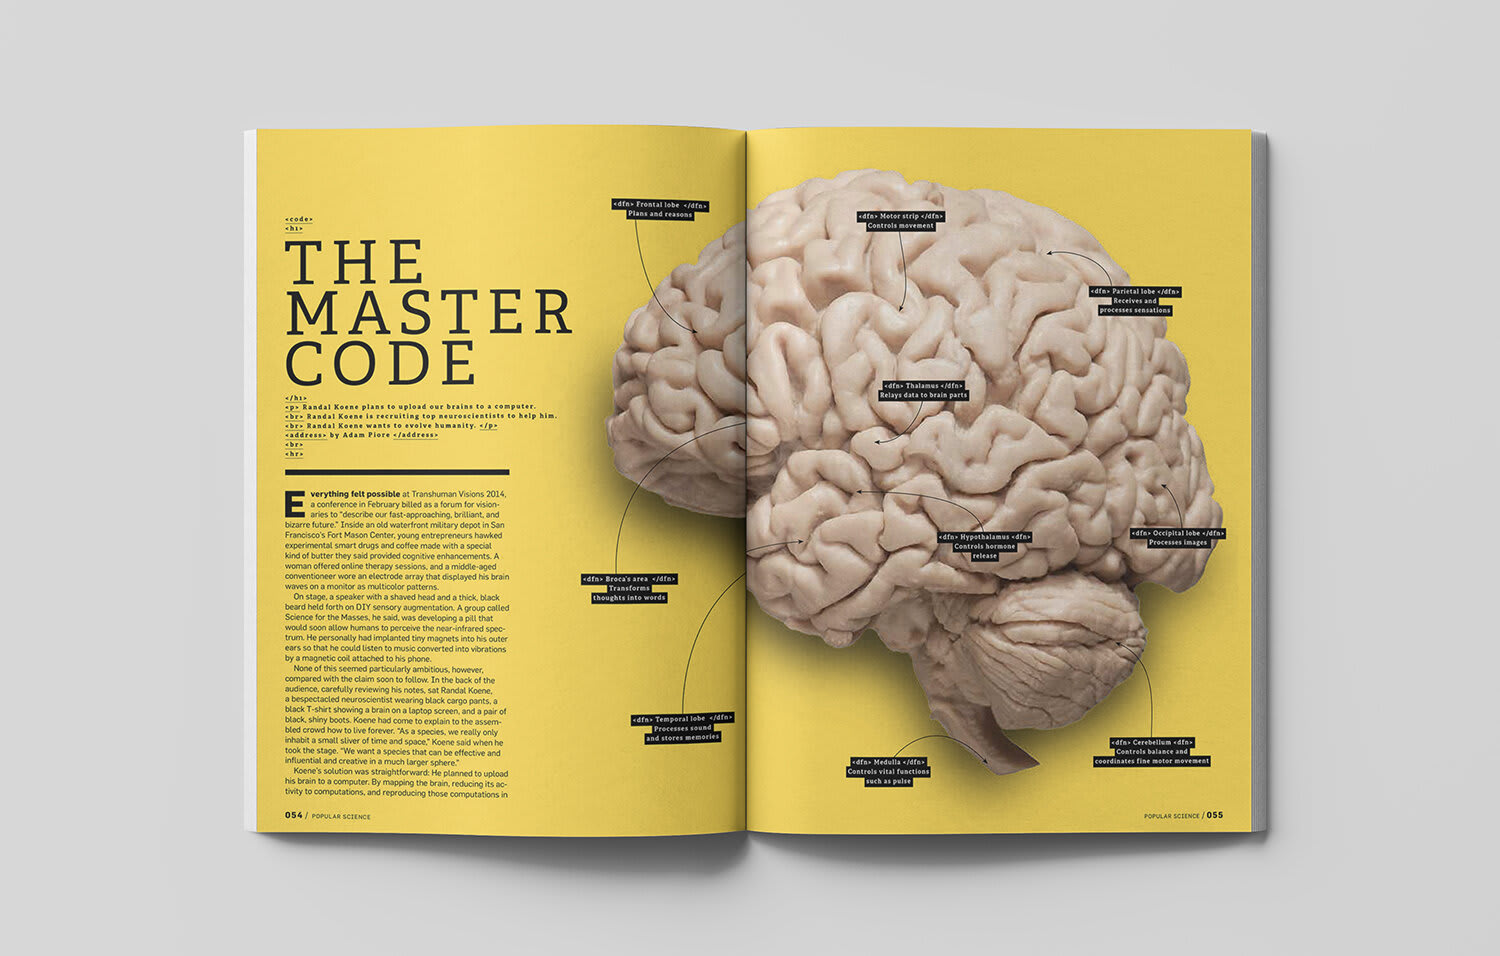 Popular Science - The Master Code